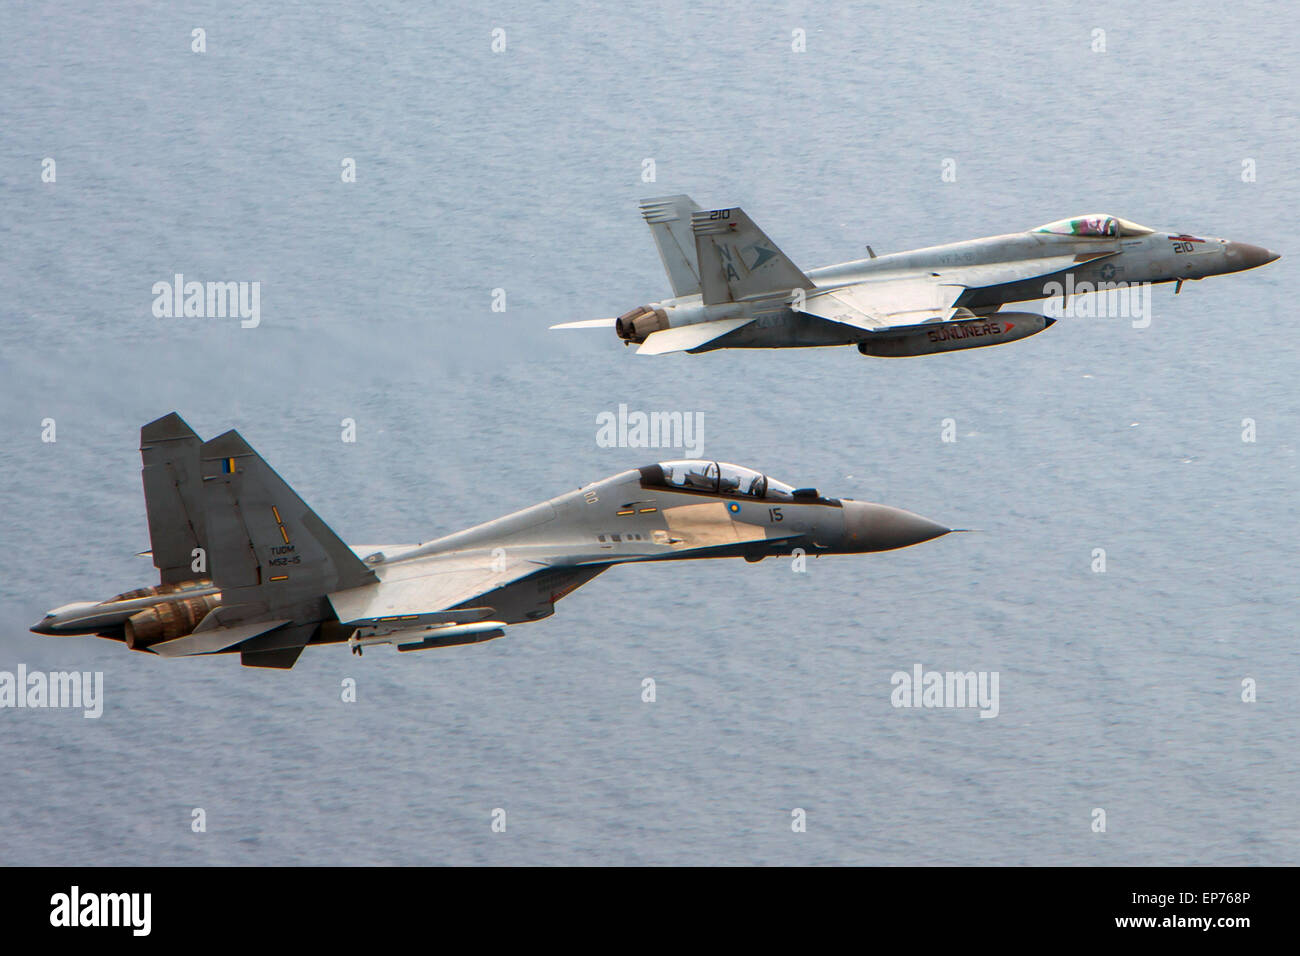 A U.S. Navy F/A-18C Hornet fighter aircraft flies in formation with a Russian made Royal Malaysian Air Force SU - Stock Image